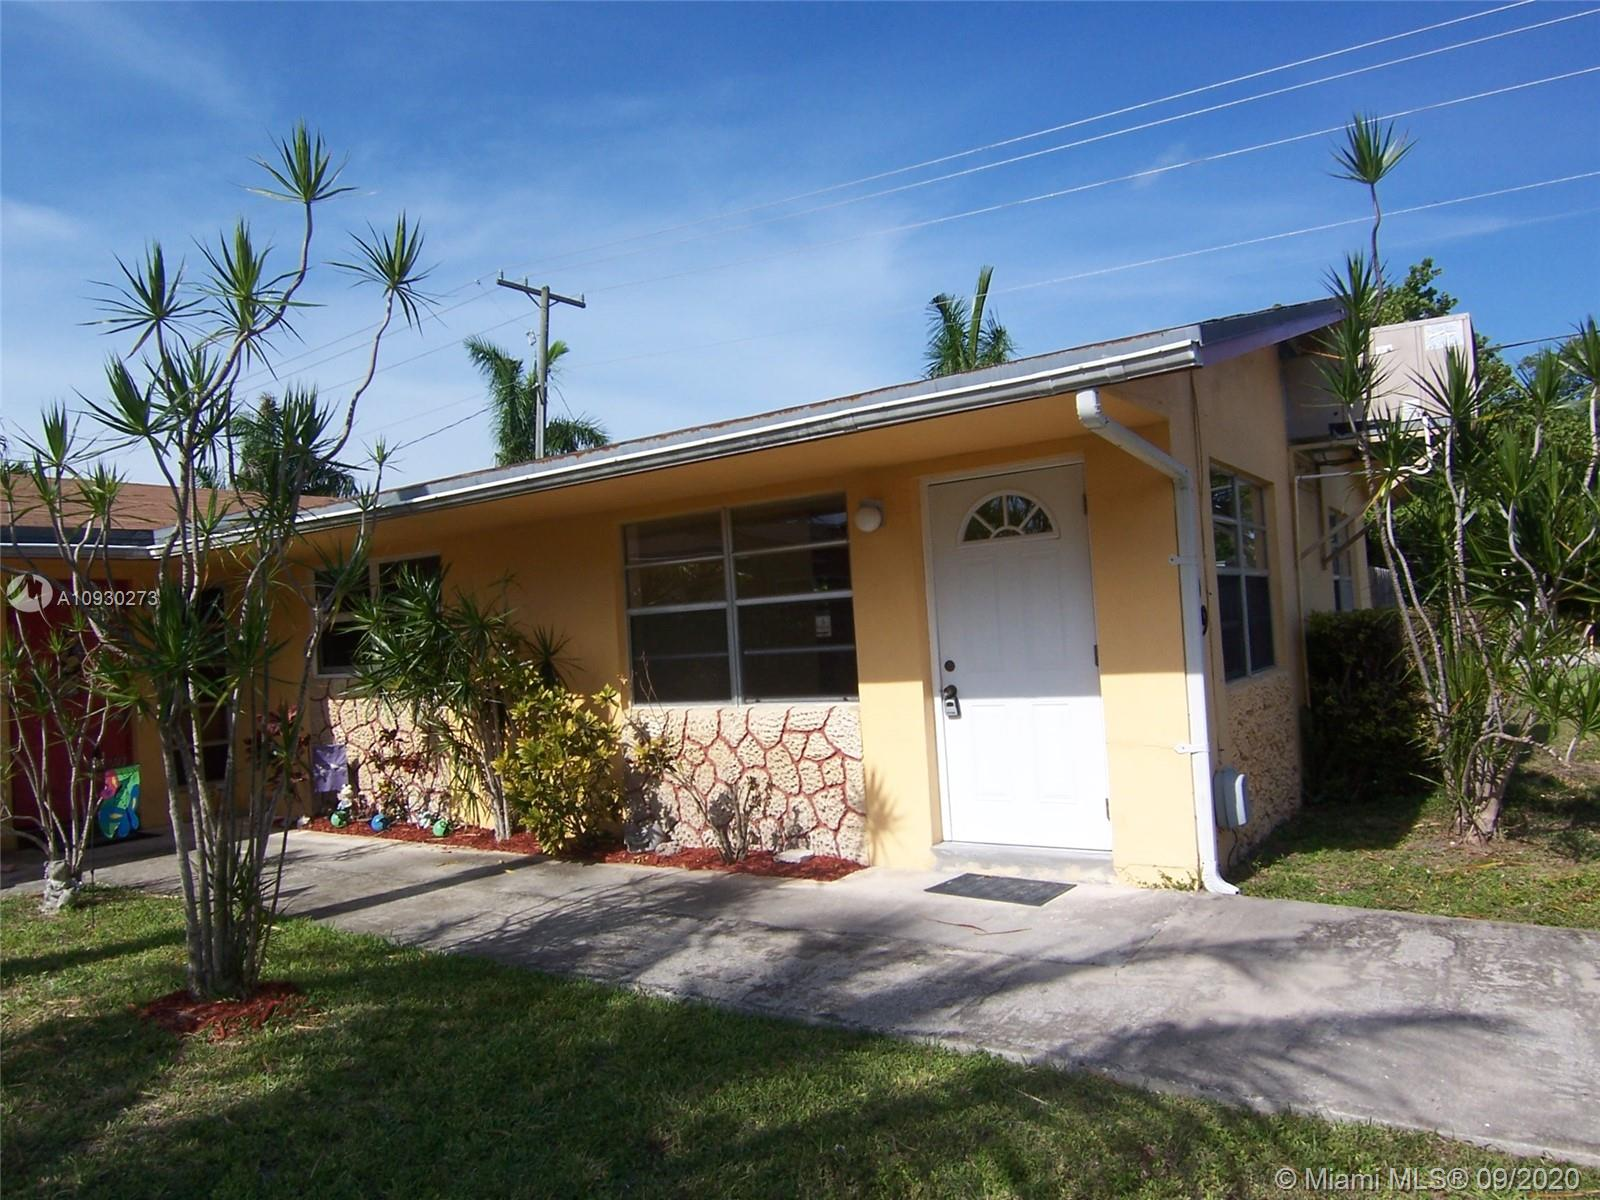 2709 SW 46th St # 1, Dania Beach, Florida 33312, 2 Bedrooms Bedrooms, ,1 BathroomBathrooms,Residential Lease,For Rent,2709 SW 46th St # 1,A10930273